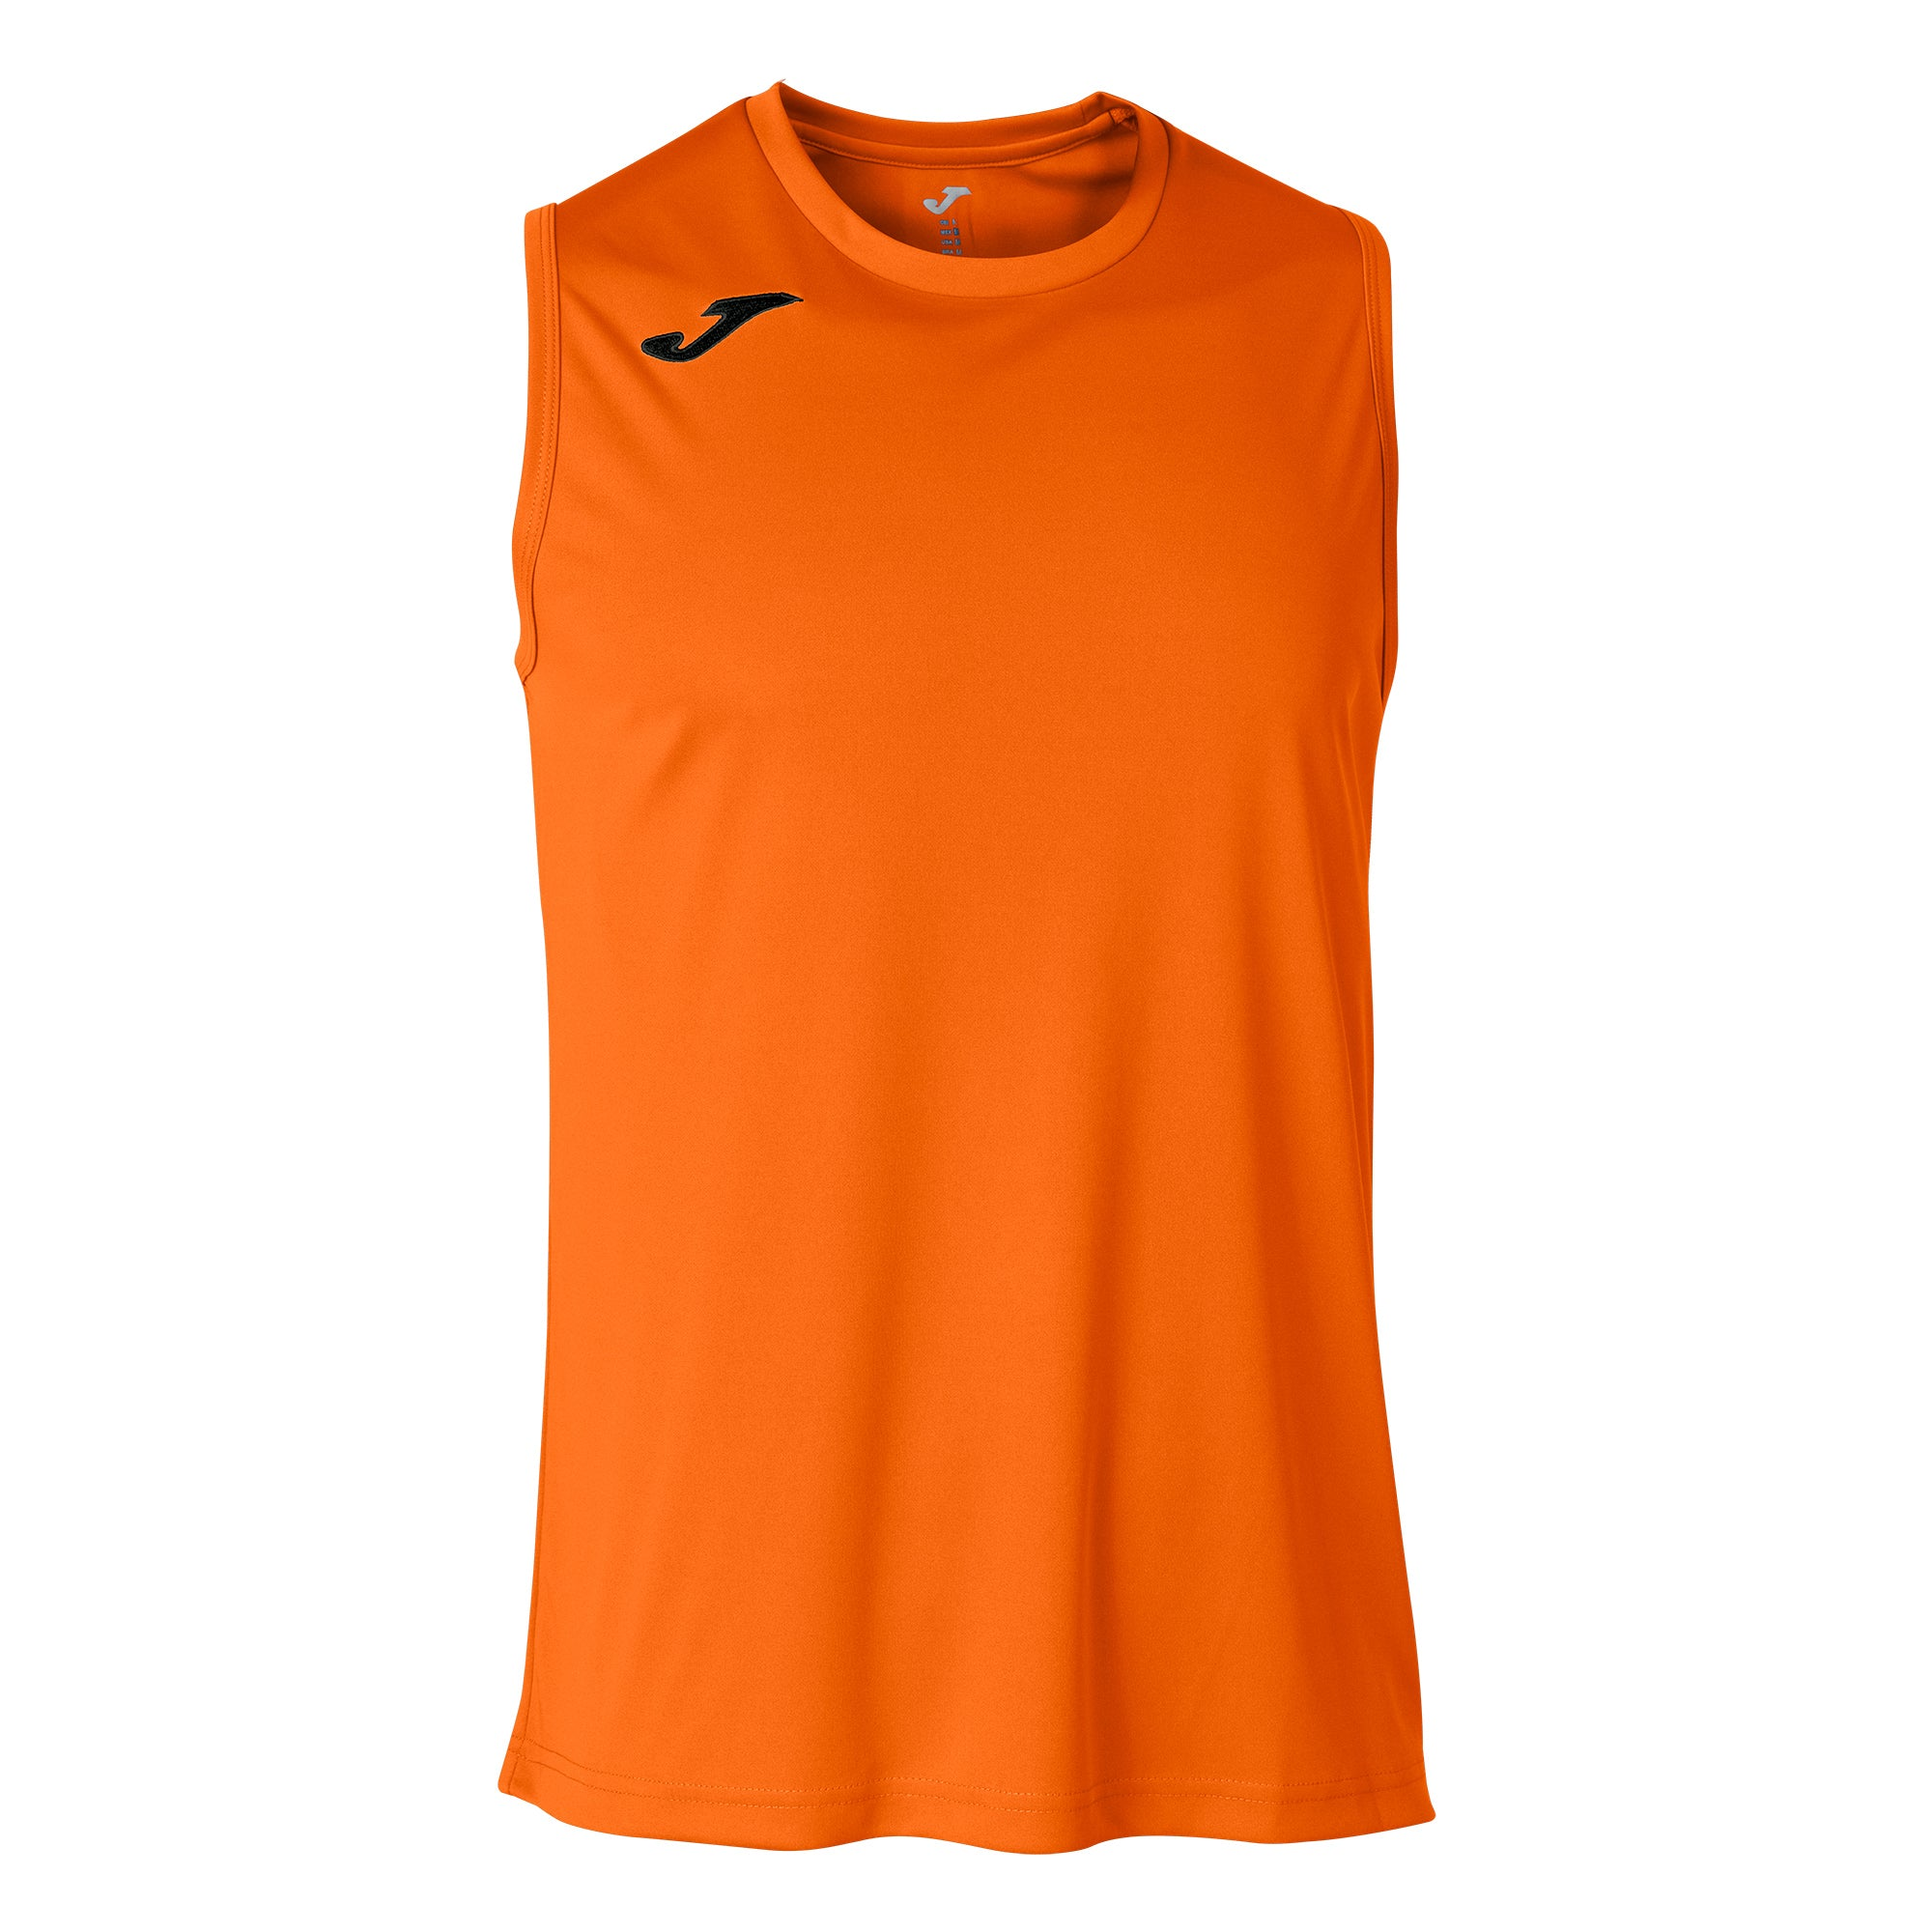 Teamwear - Joma Combi Sleeveless - Orange - JO-101660-880